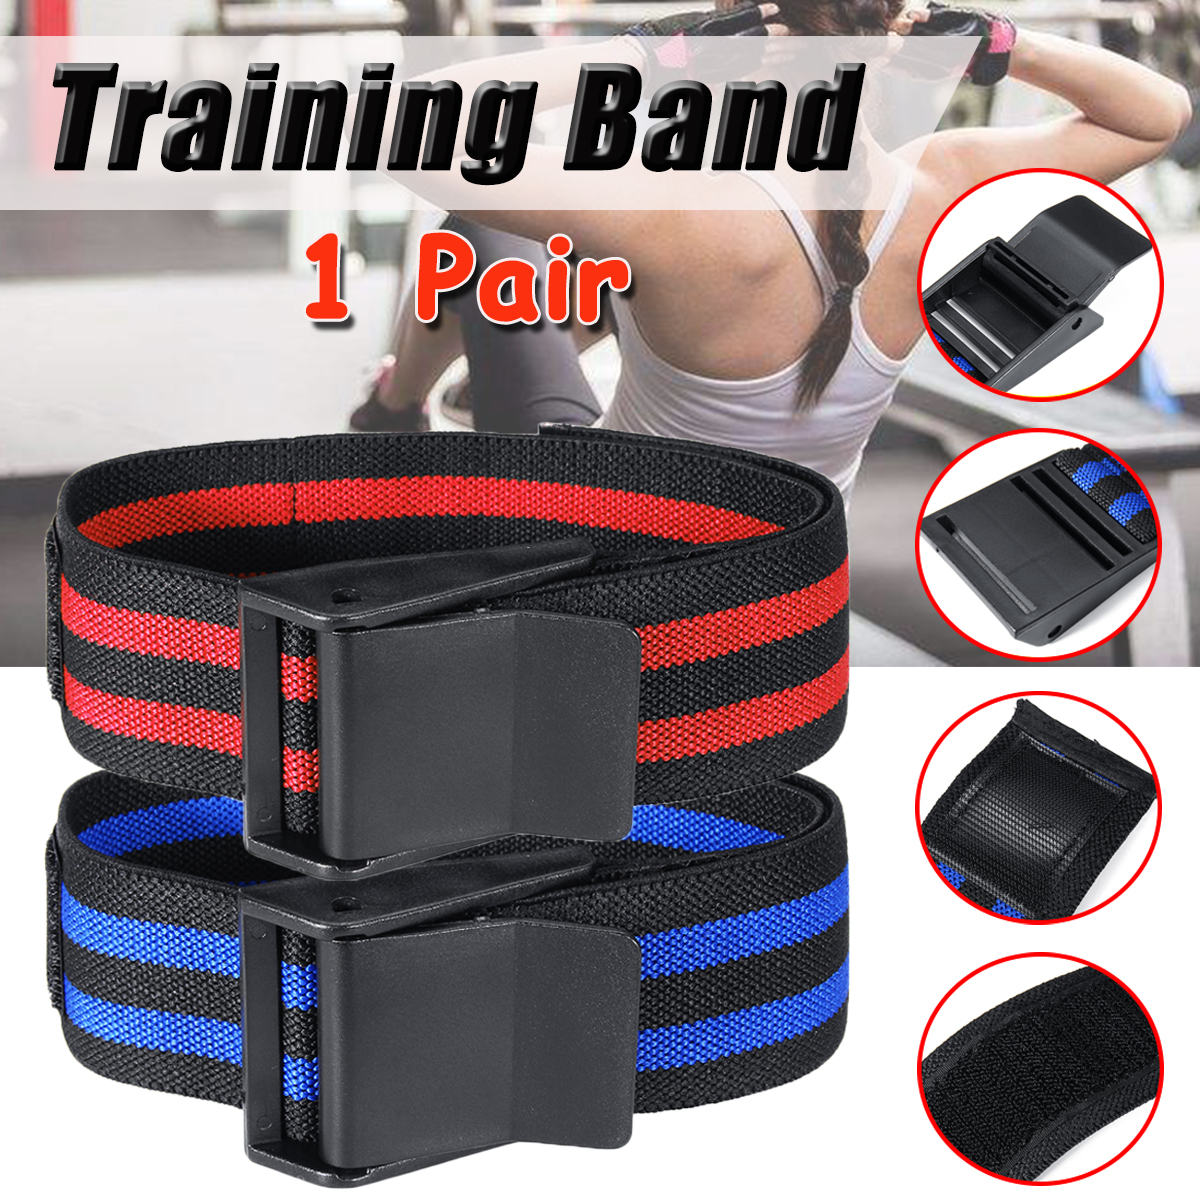 2 Pcs Bands Occlusion Training Bands Restriction Bands